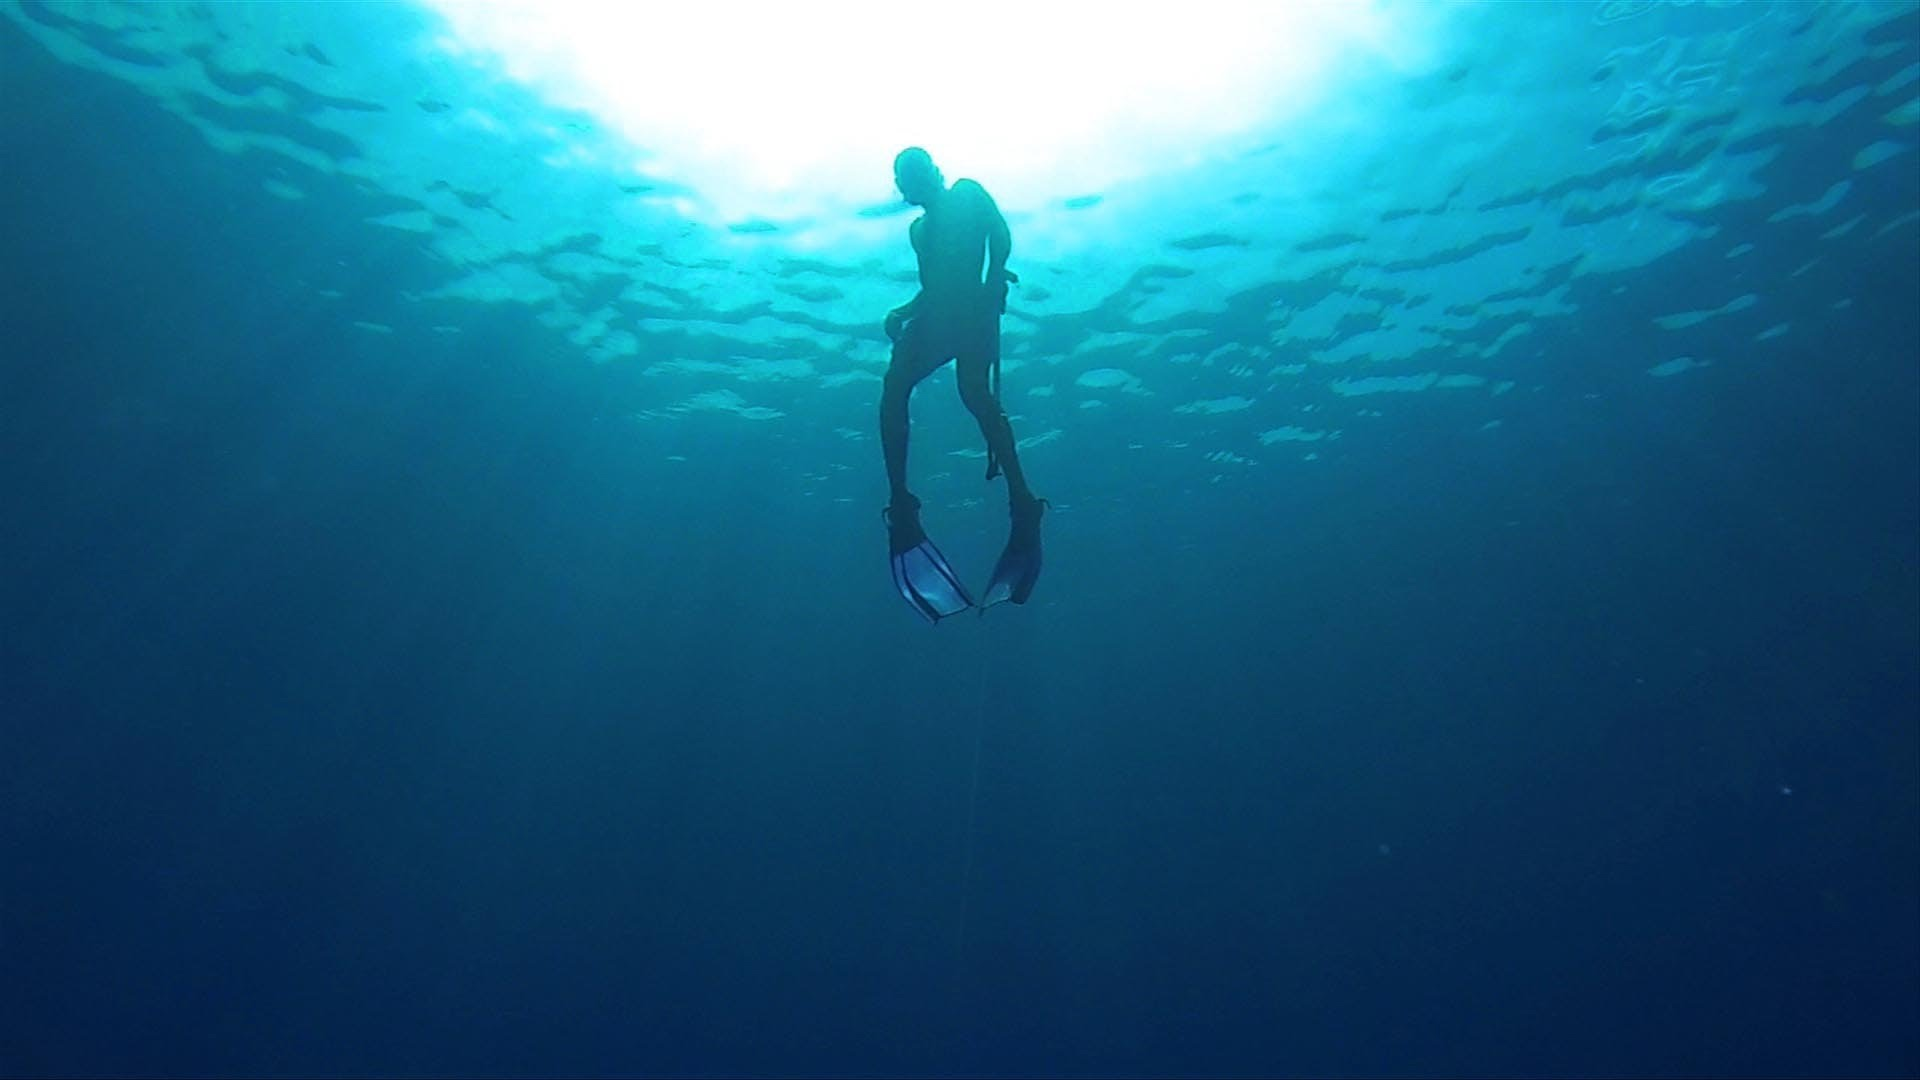 Diving Deeper Taster – The story of the Jamaican spearfishermen